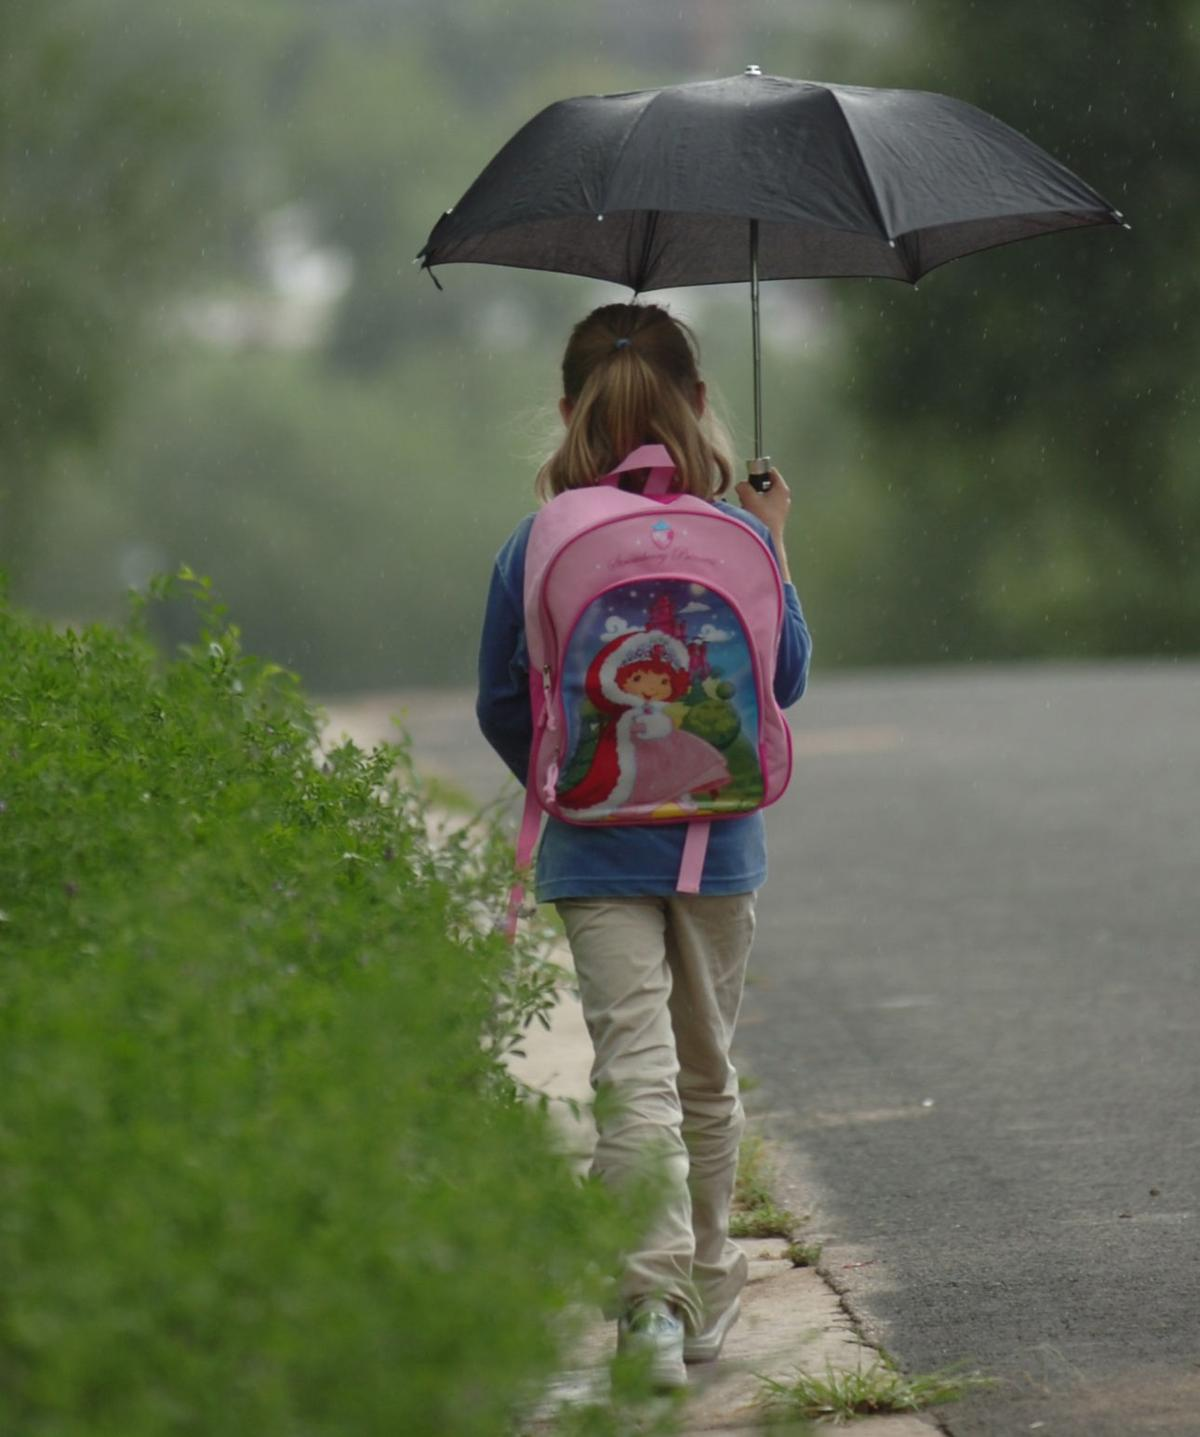 Thursday, August 24, 2006-photo by Jerilee Bennett-Krista Ellington, 7, walks home from school in a light rain storm in the Hillside community.